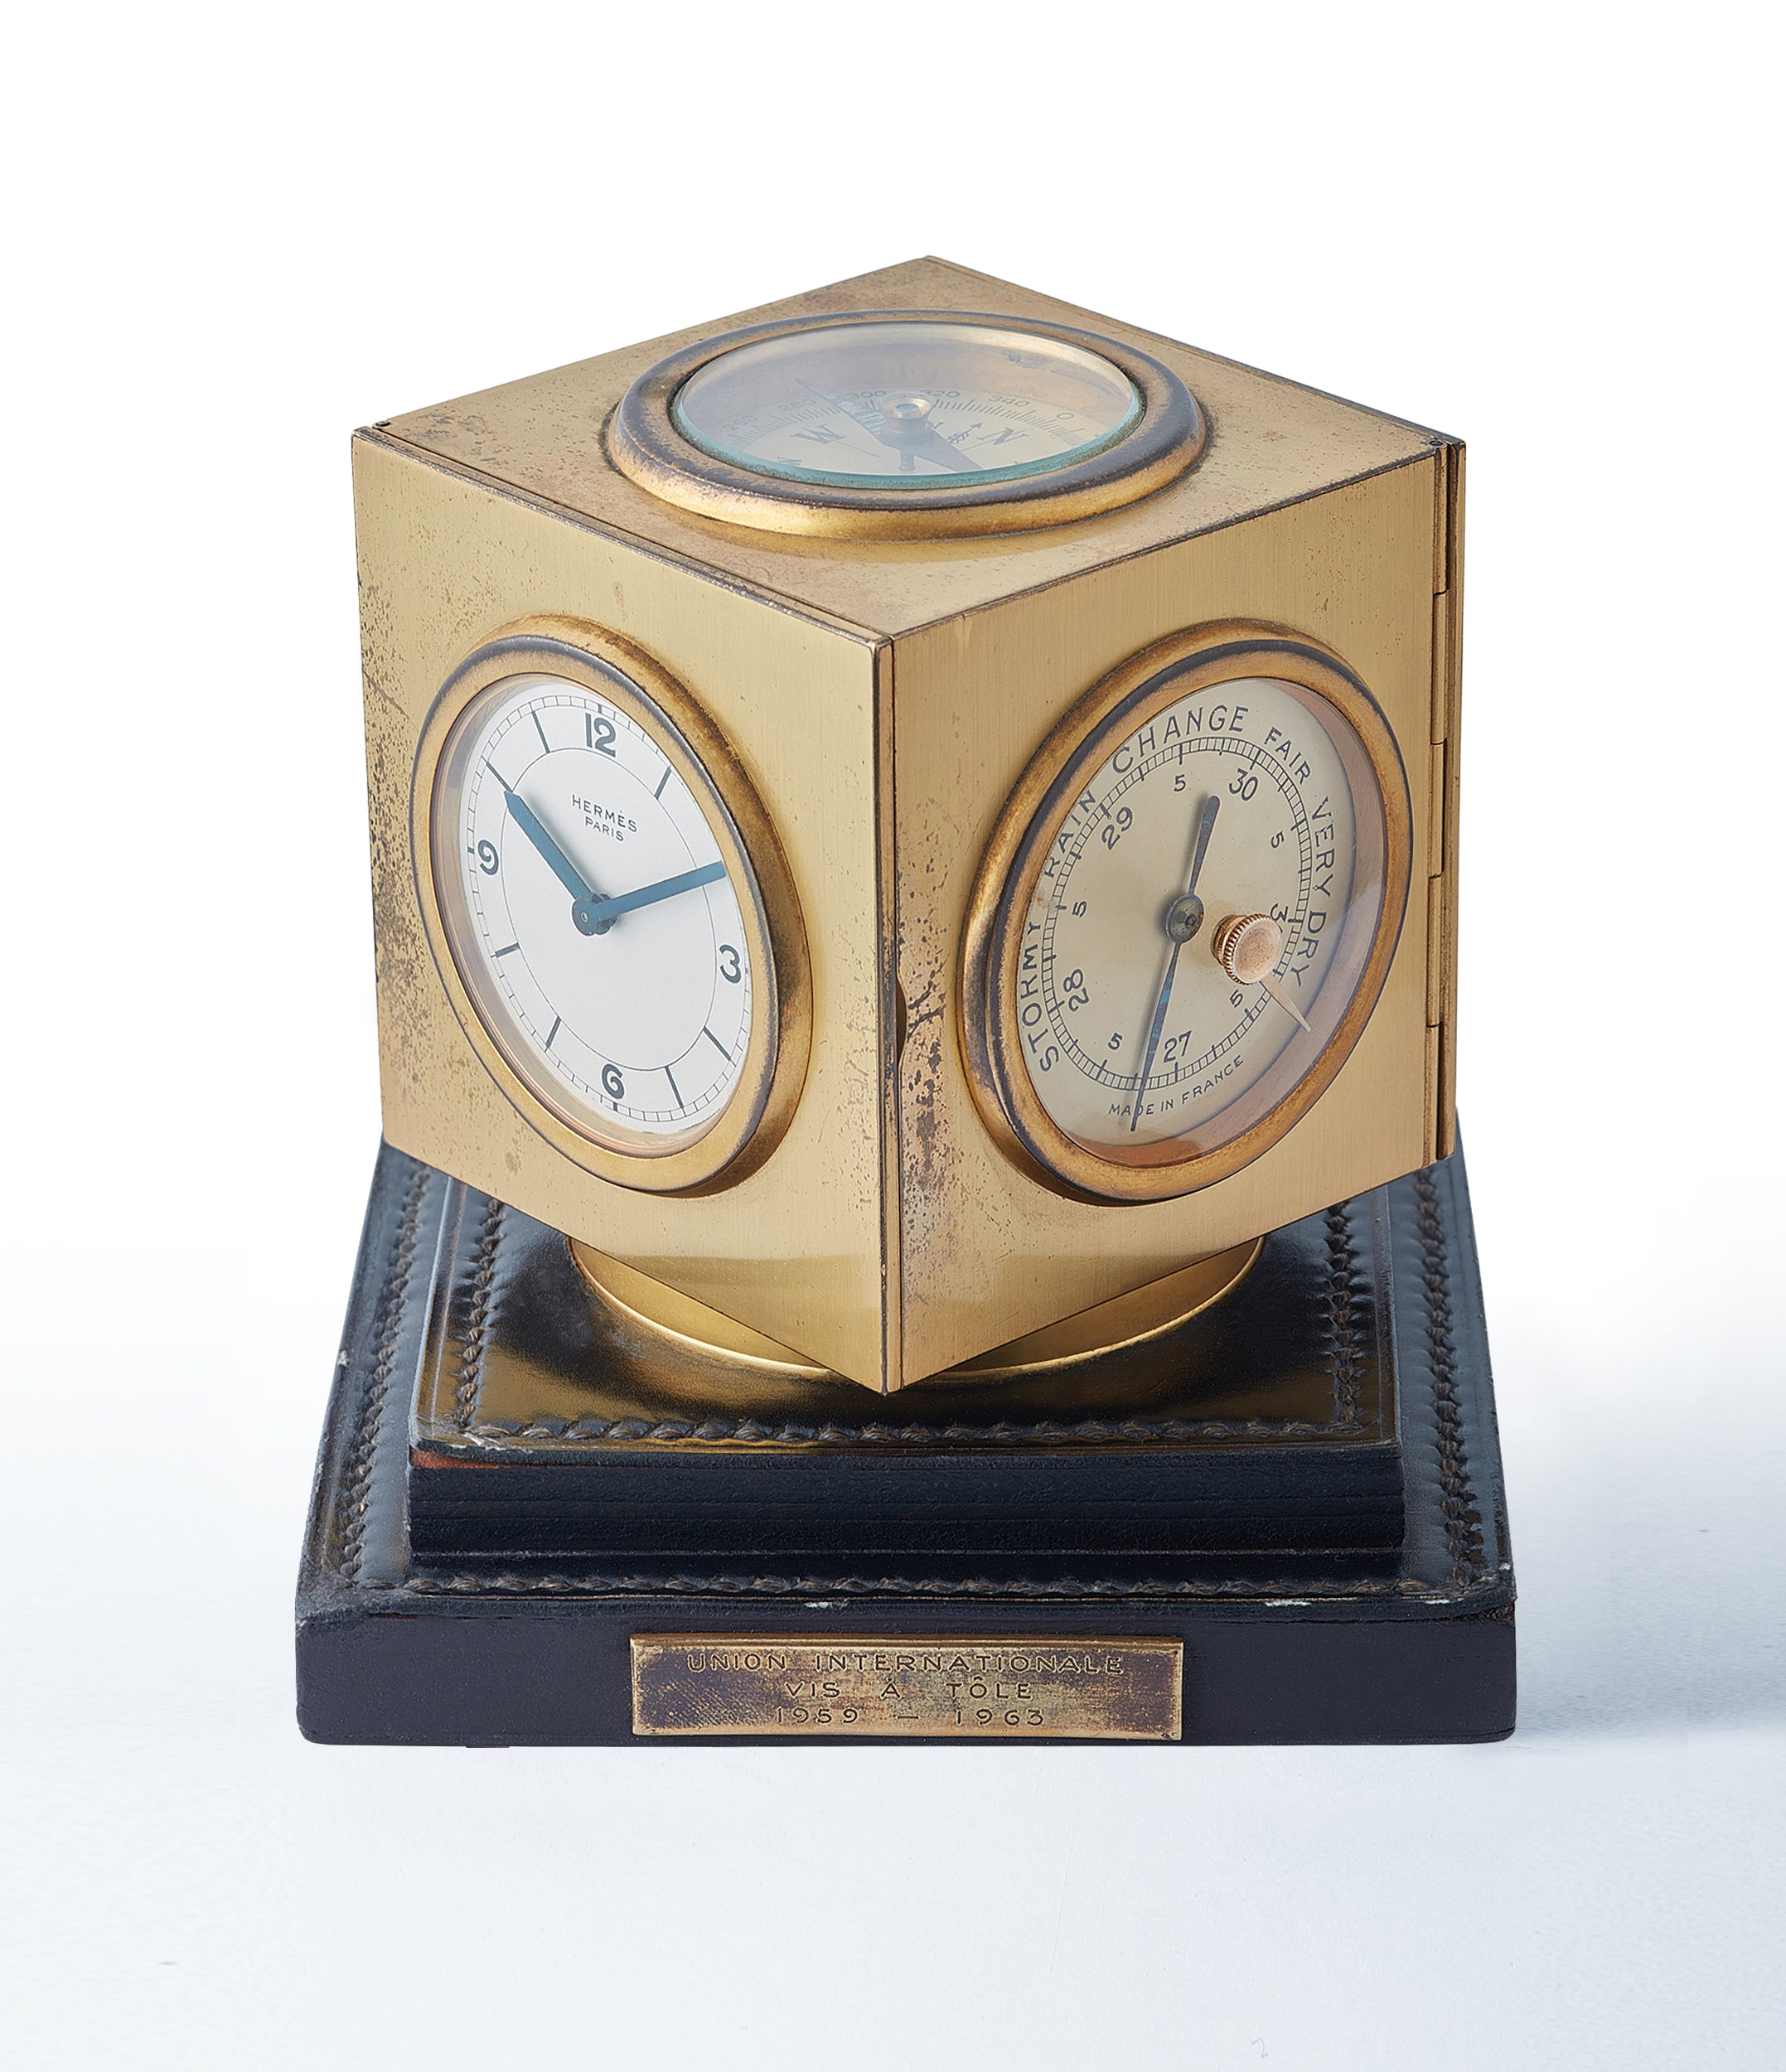 rare Hermes Compendium 8-day Art Deco brass calendar desk clock for sale online at A Collected Man for collectors of rare objects